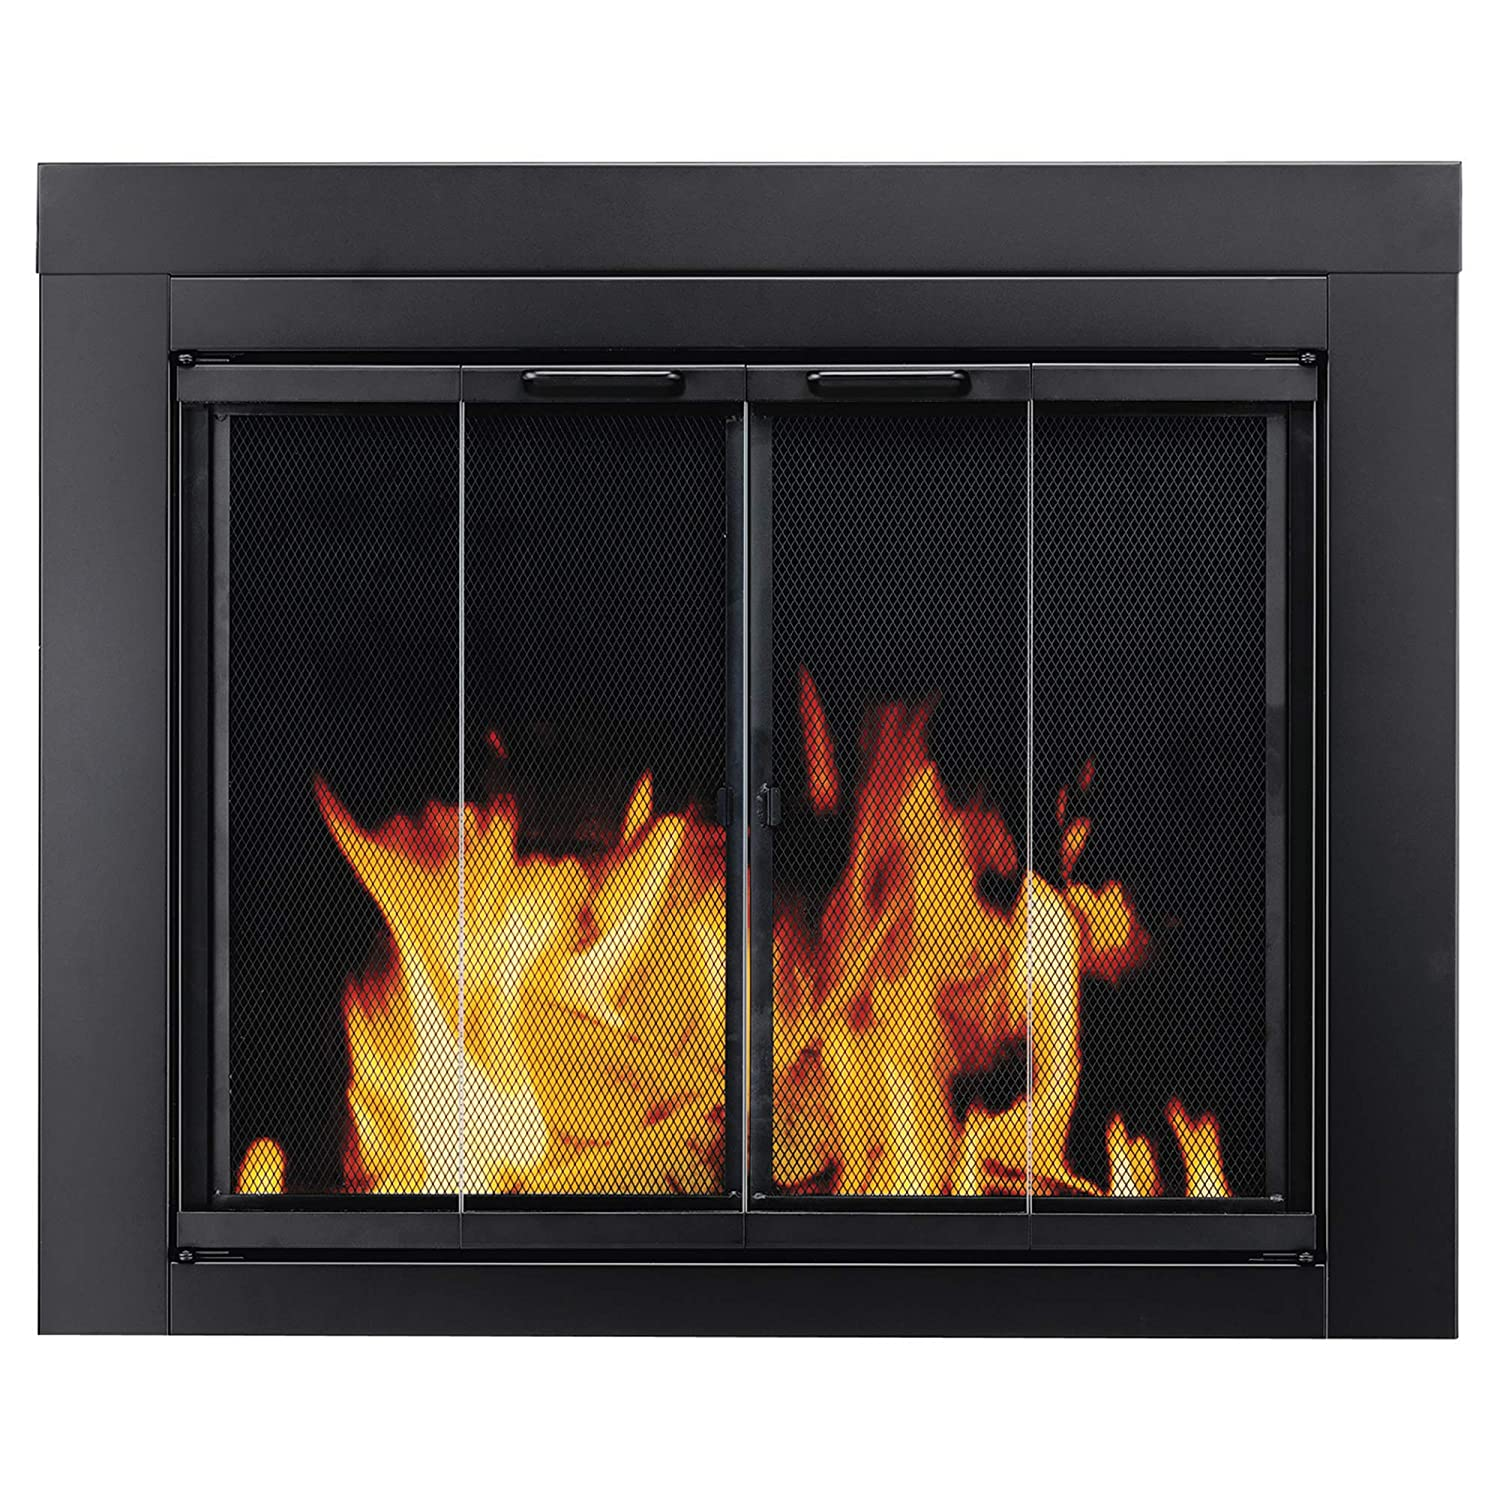 Cool Pleasant Hearth At 1000 Ascot Fireplace Glass Door Black Small Download Free Architecture Designs Scobabritishbridgeorg